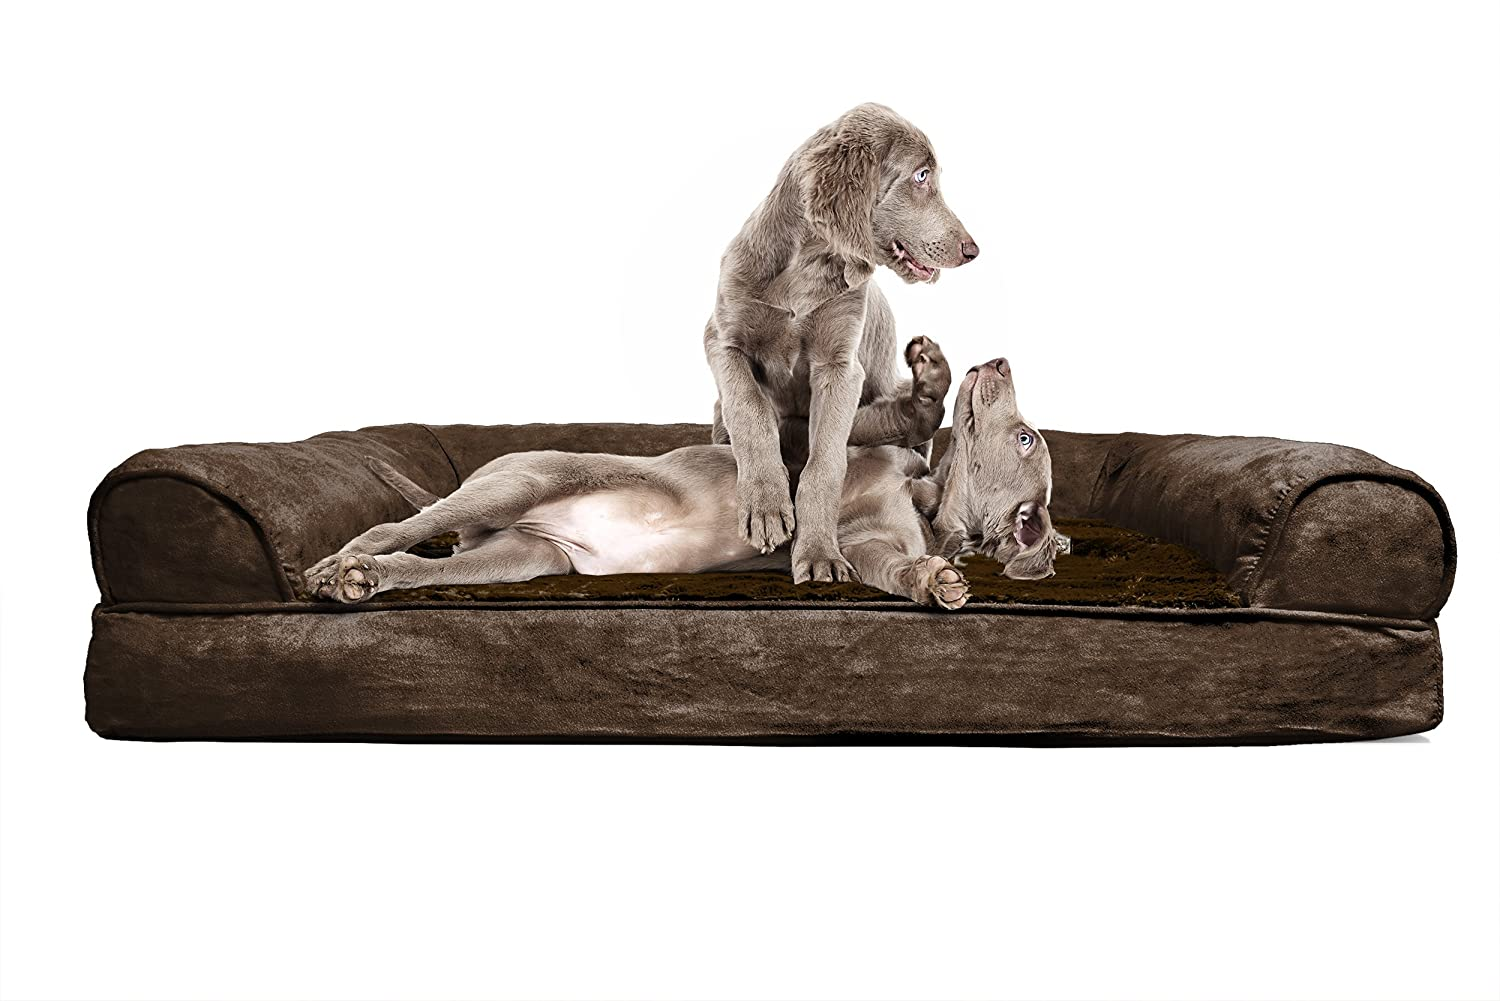 Top 10 Dog Beds And Furniture Products: Ease Of Use, Comfort & Convenience 8